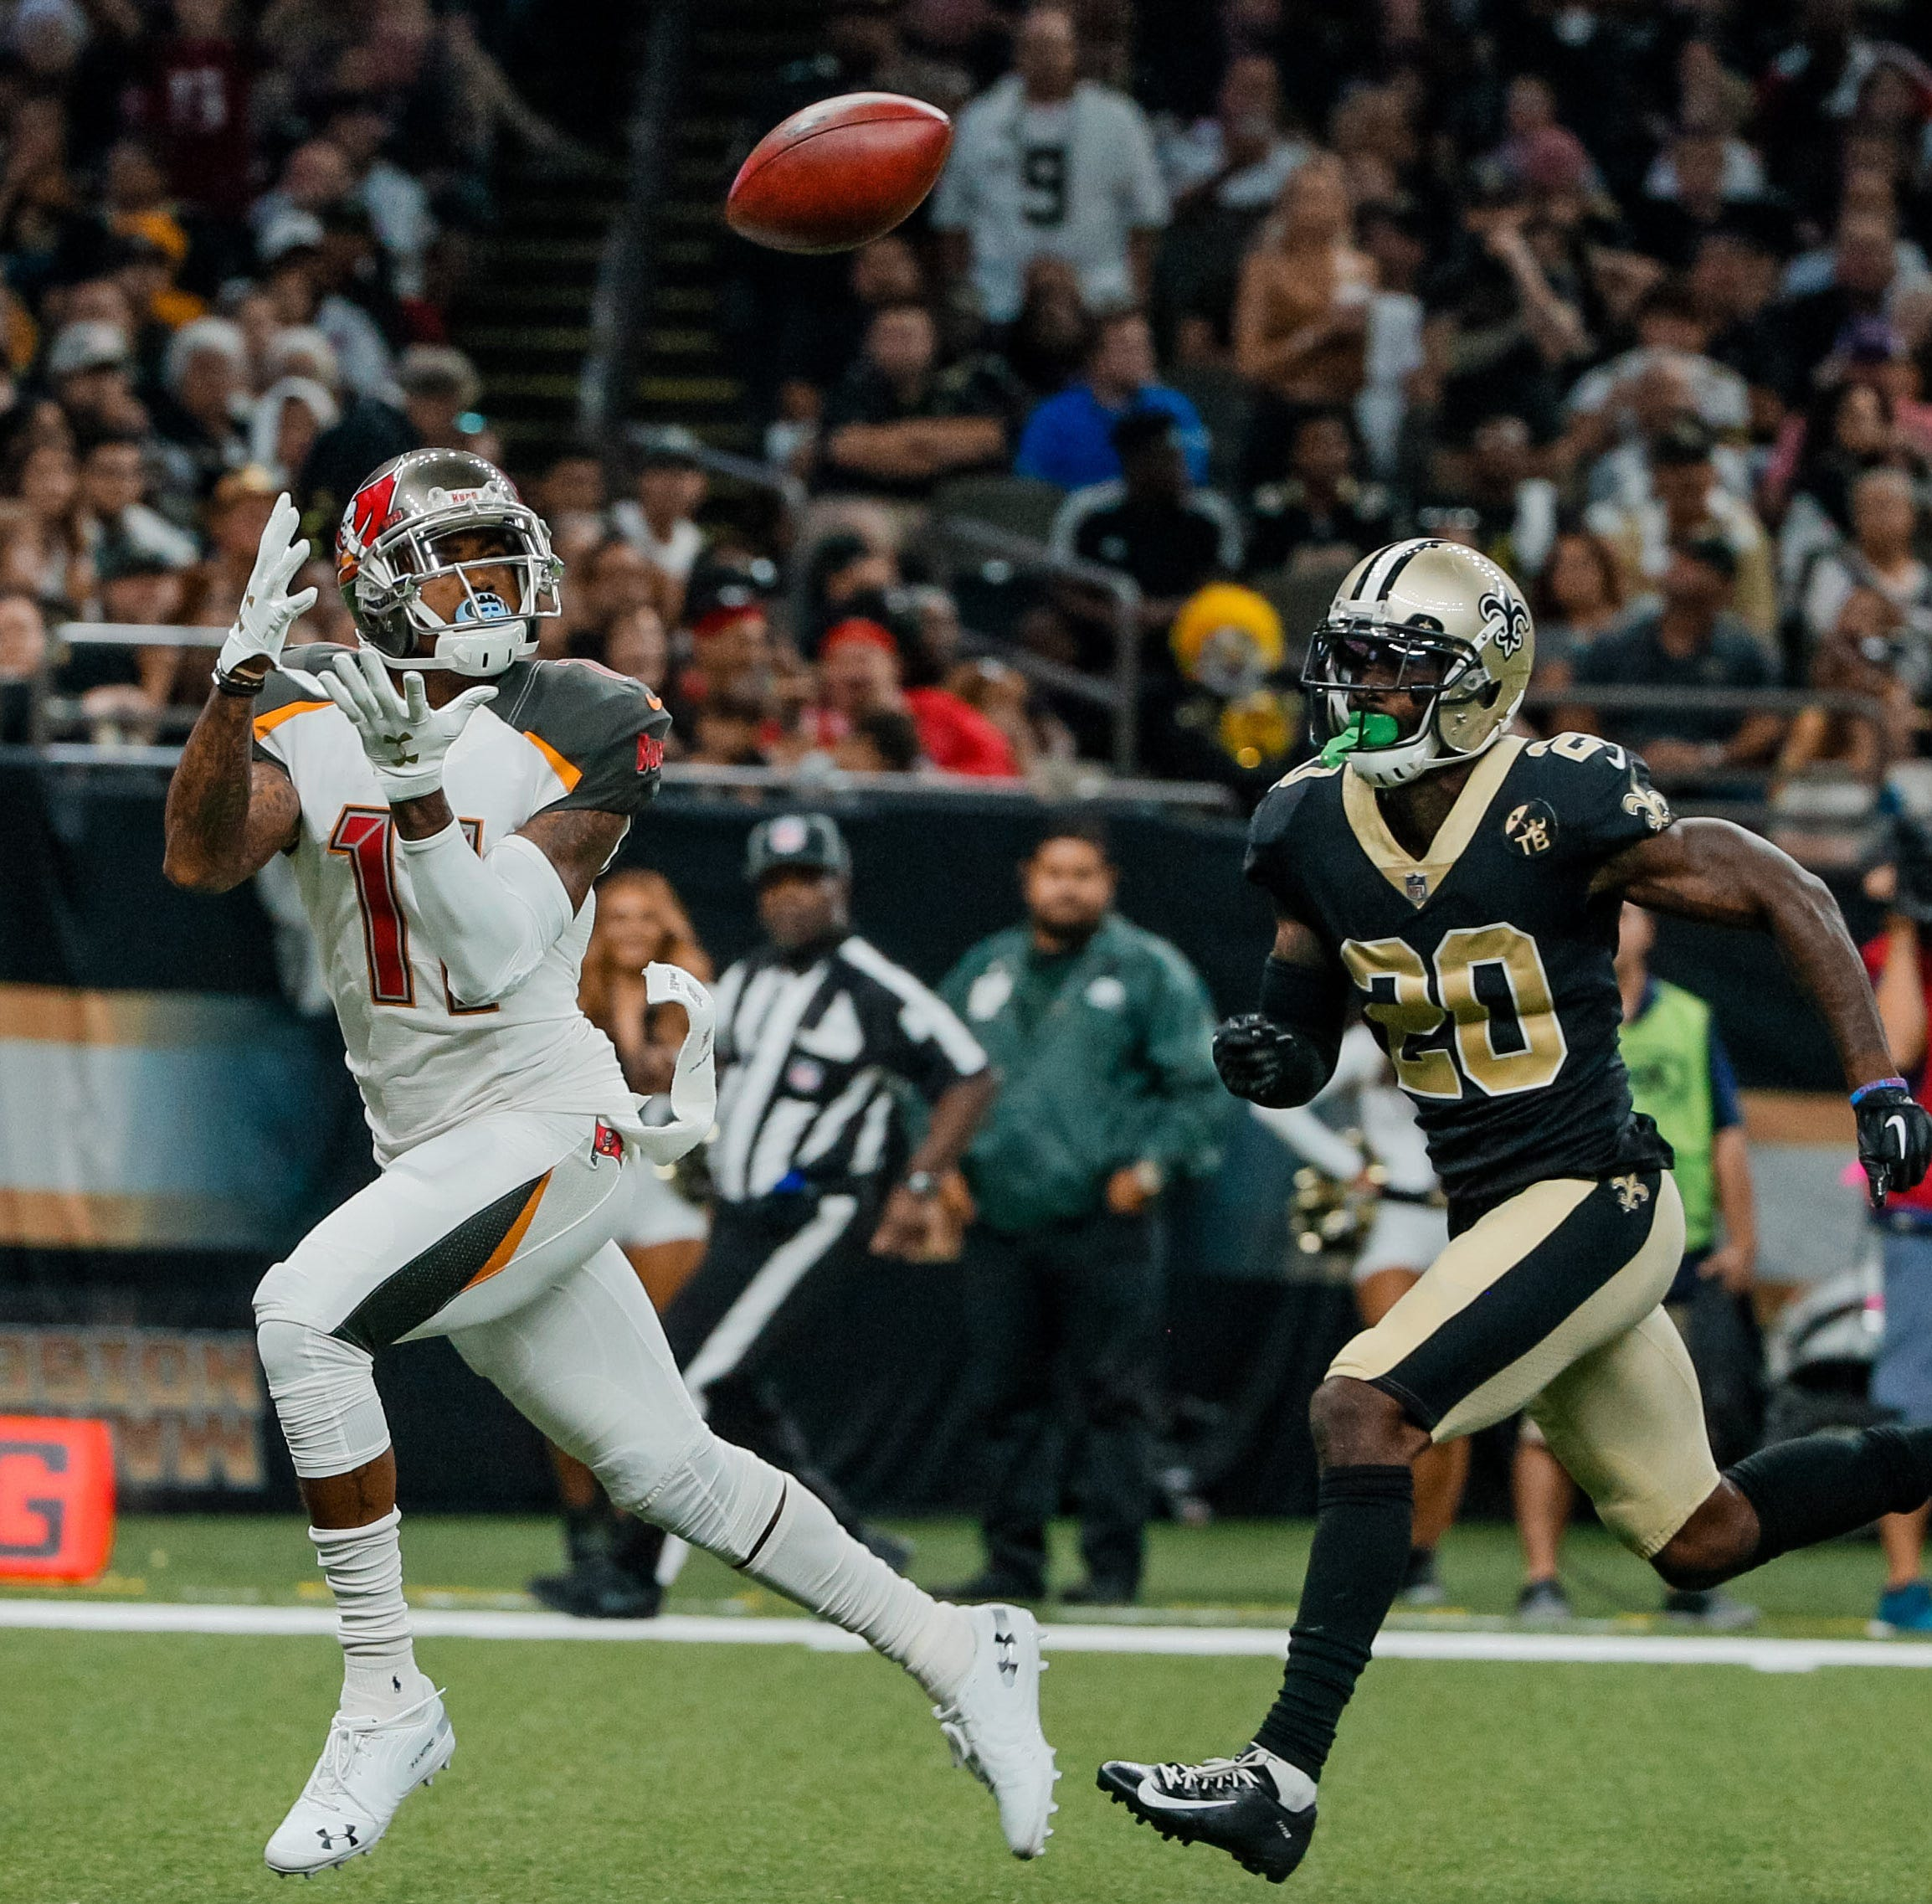 Pro Football Focus deep dive: Cordy Glenn's perfect game, Desean Jackson's deep ball